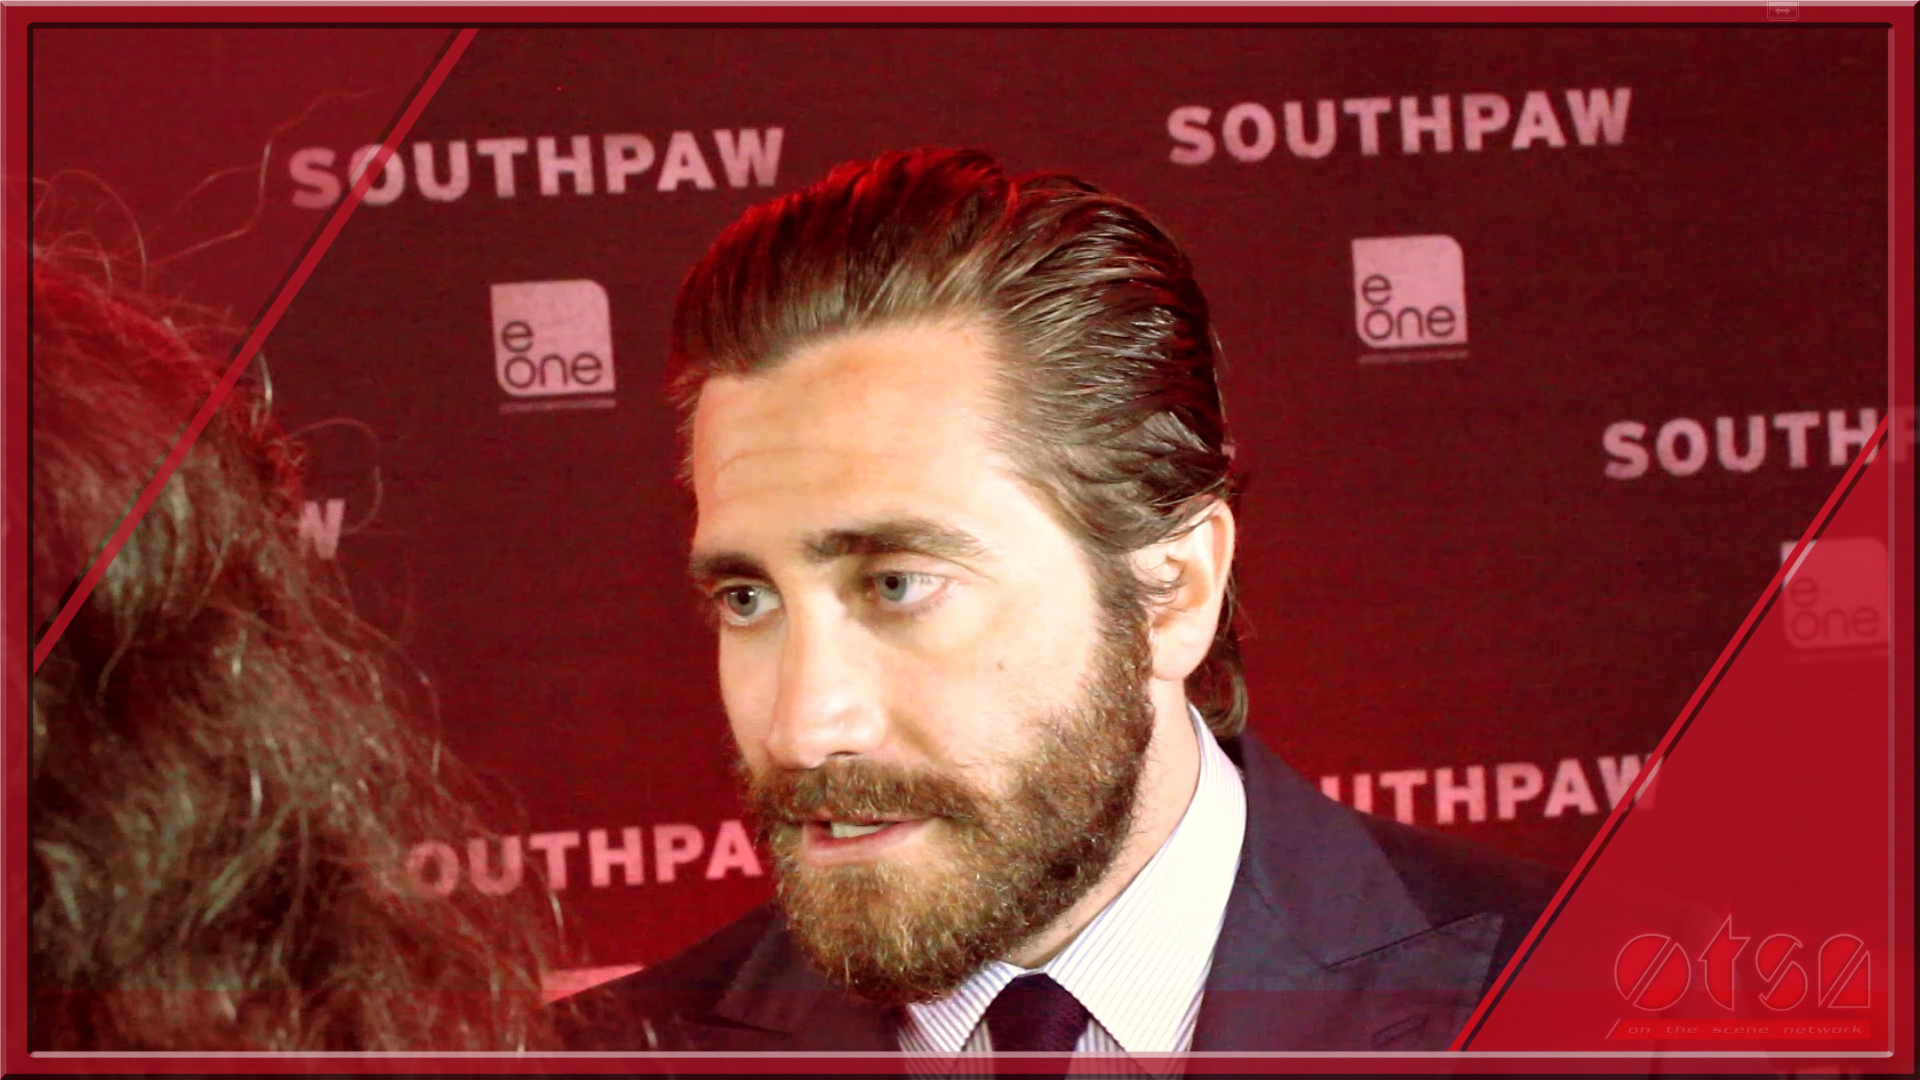 Southpaw Premiere with Jake Gyllenhaal and Rachel McAdams